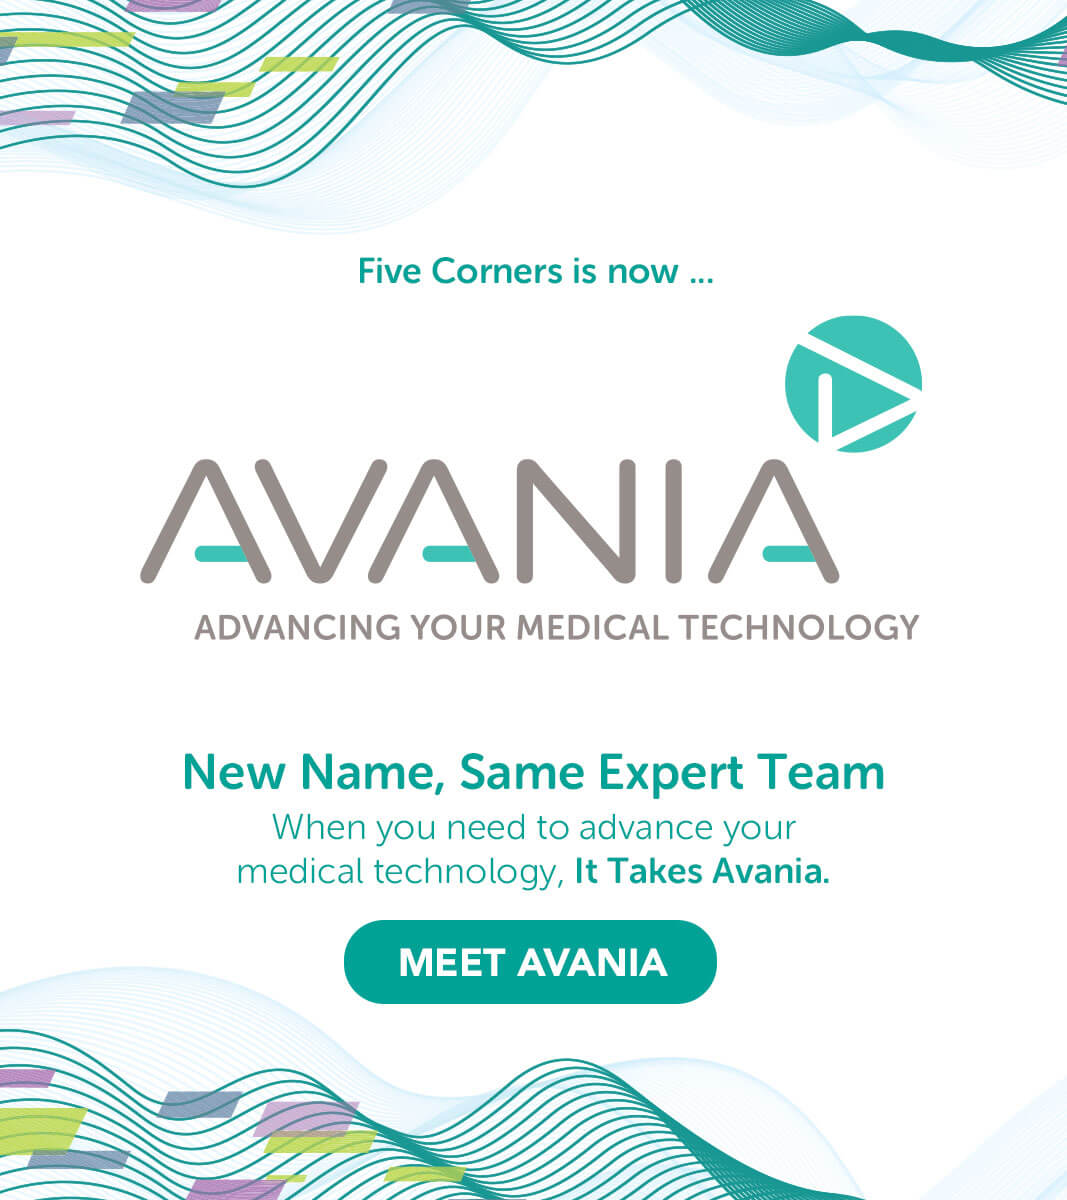 Five Corners is now Avania